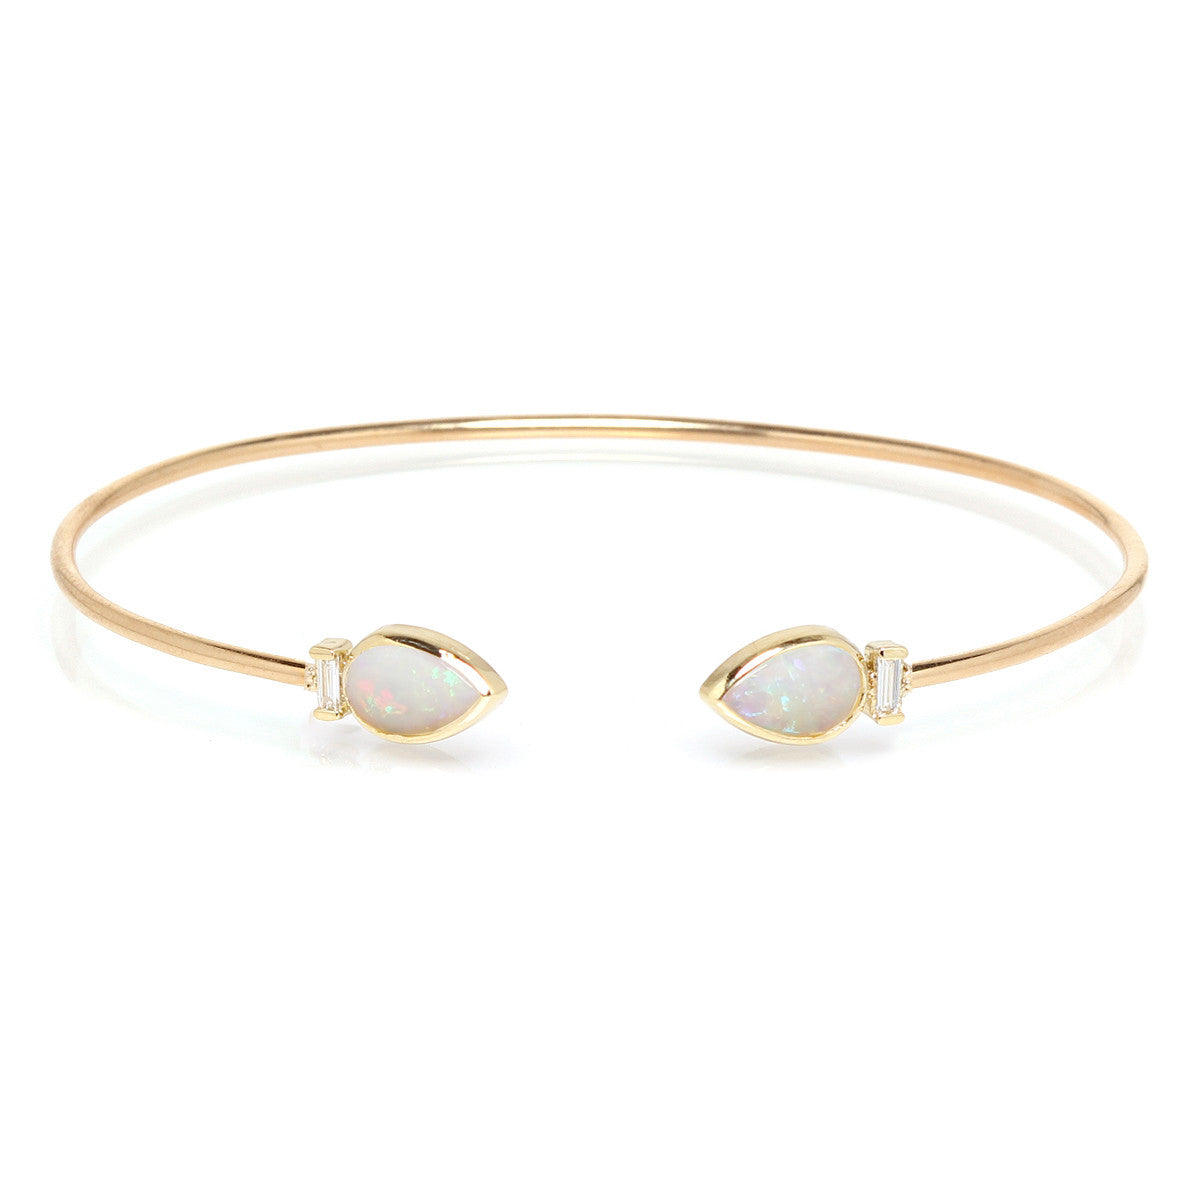 thin bangles diamonds white bracelets of bracelet diamond bangle in designs brilliant jewelry featuring wg nl women for gold open